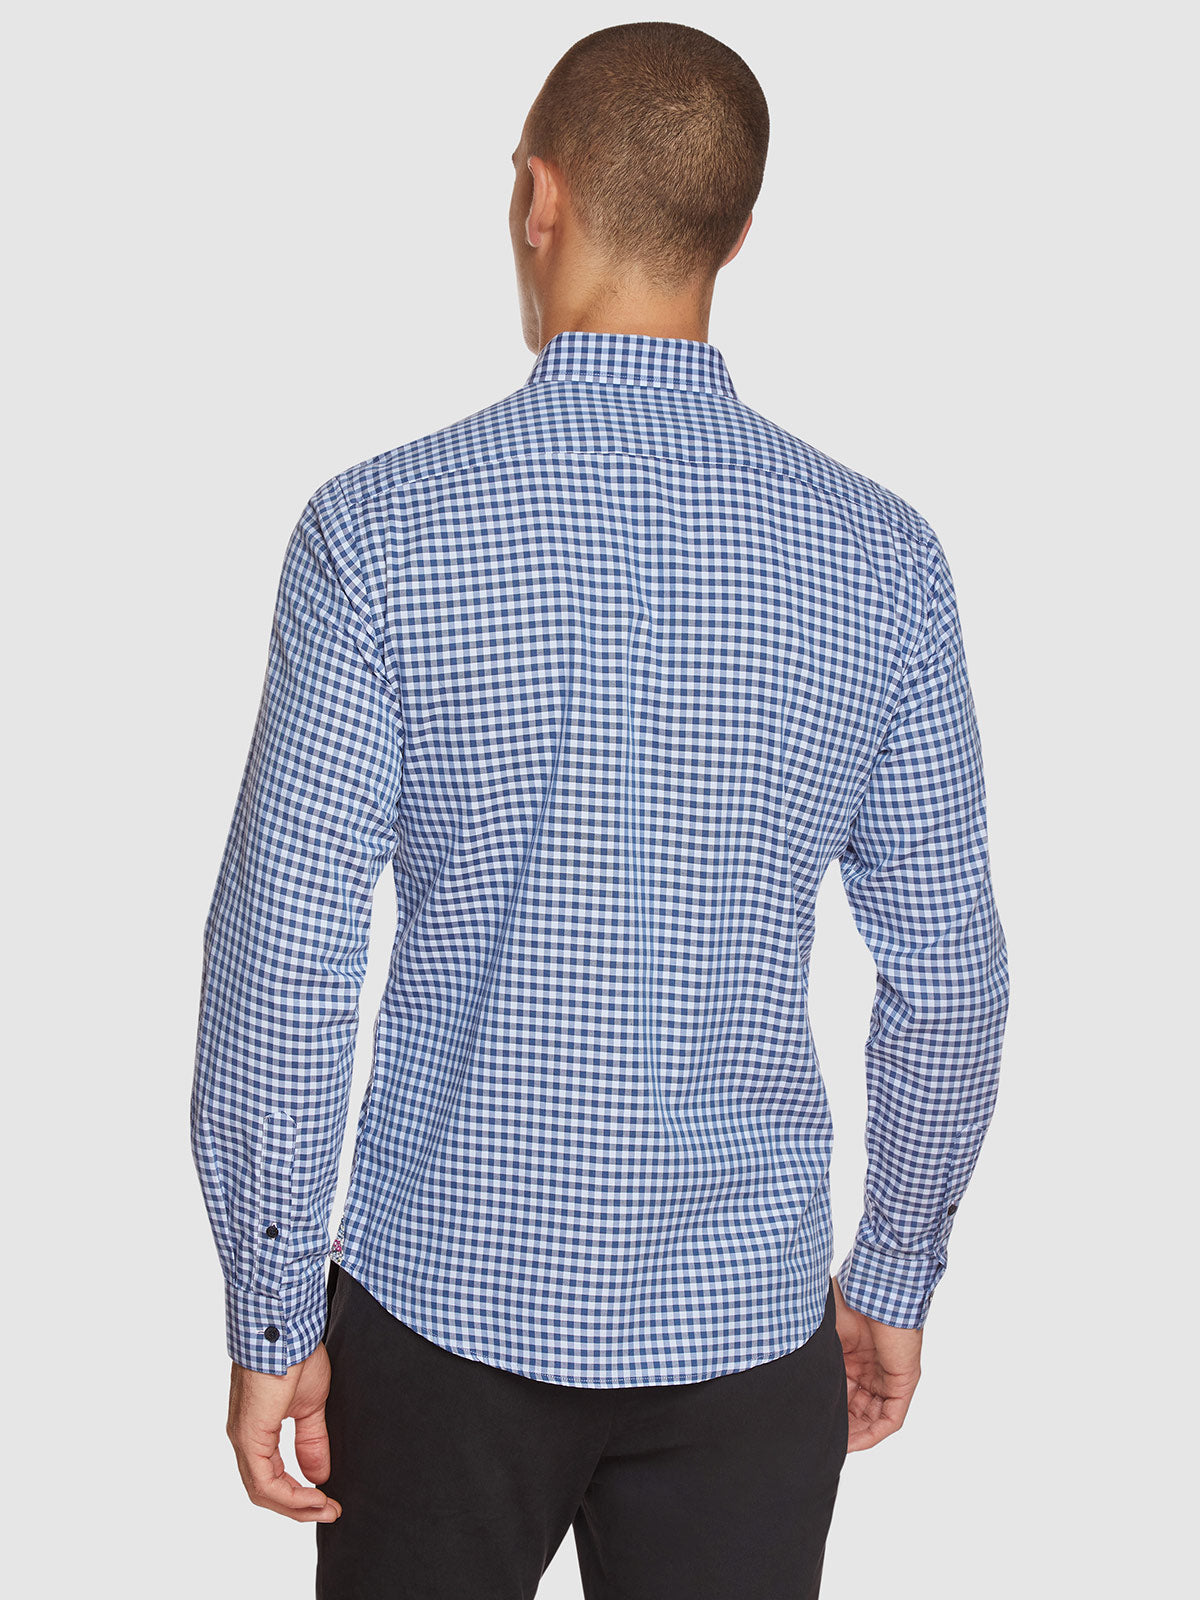 STRATTON TWILL CHECKED SHIRT PETROL BLUE